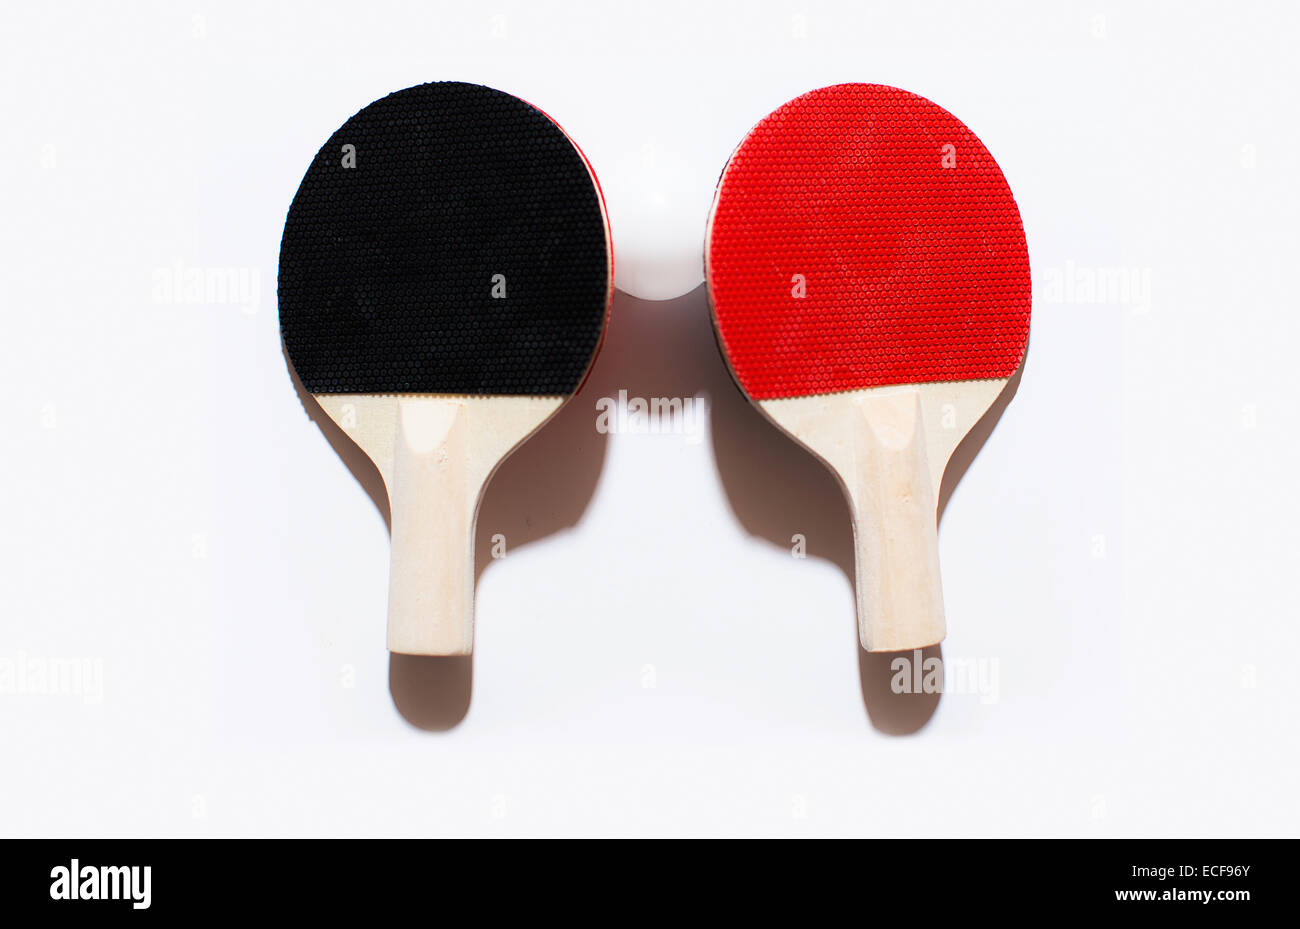 Ping pong paddles and a ball - Stock Image